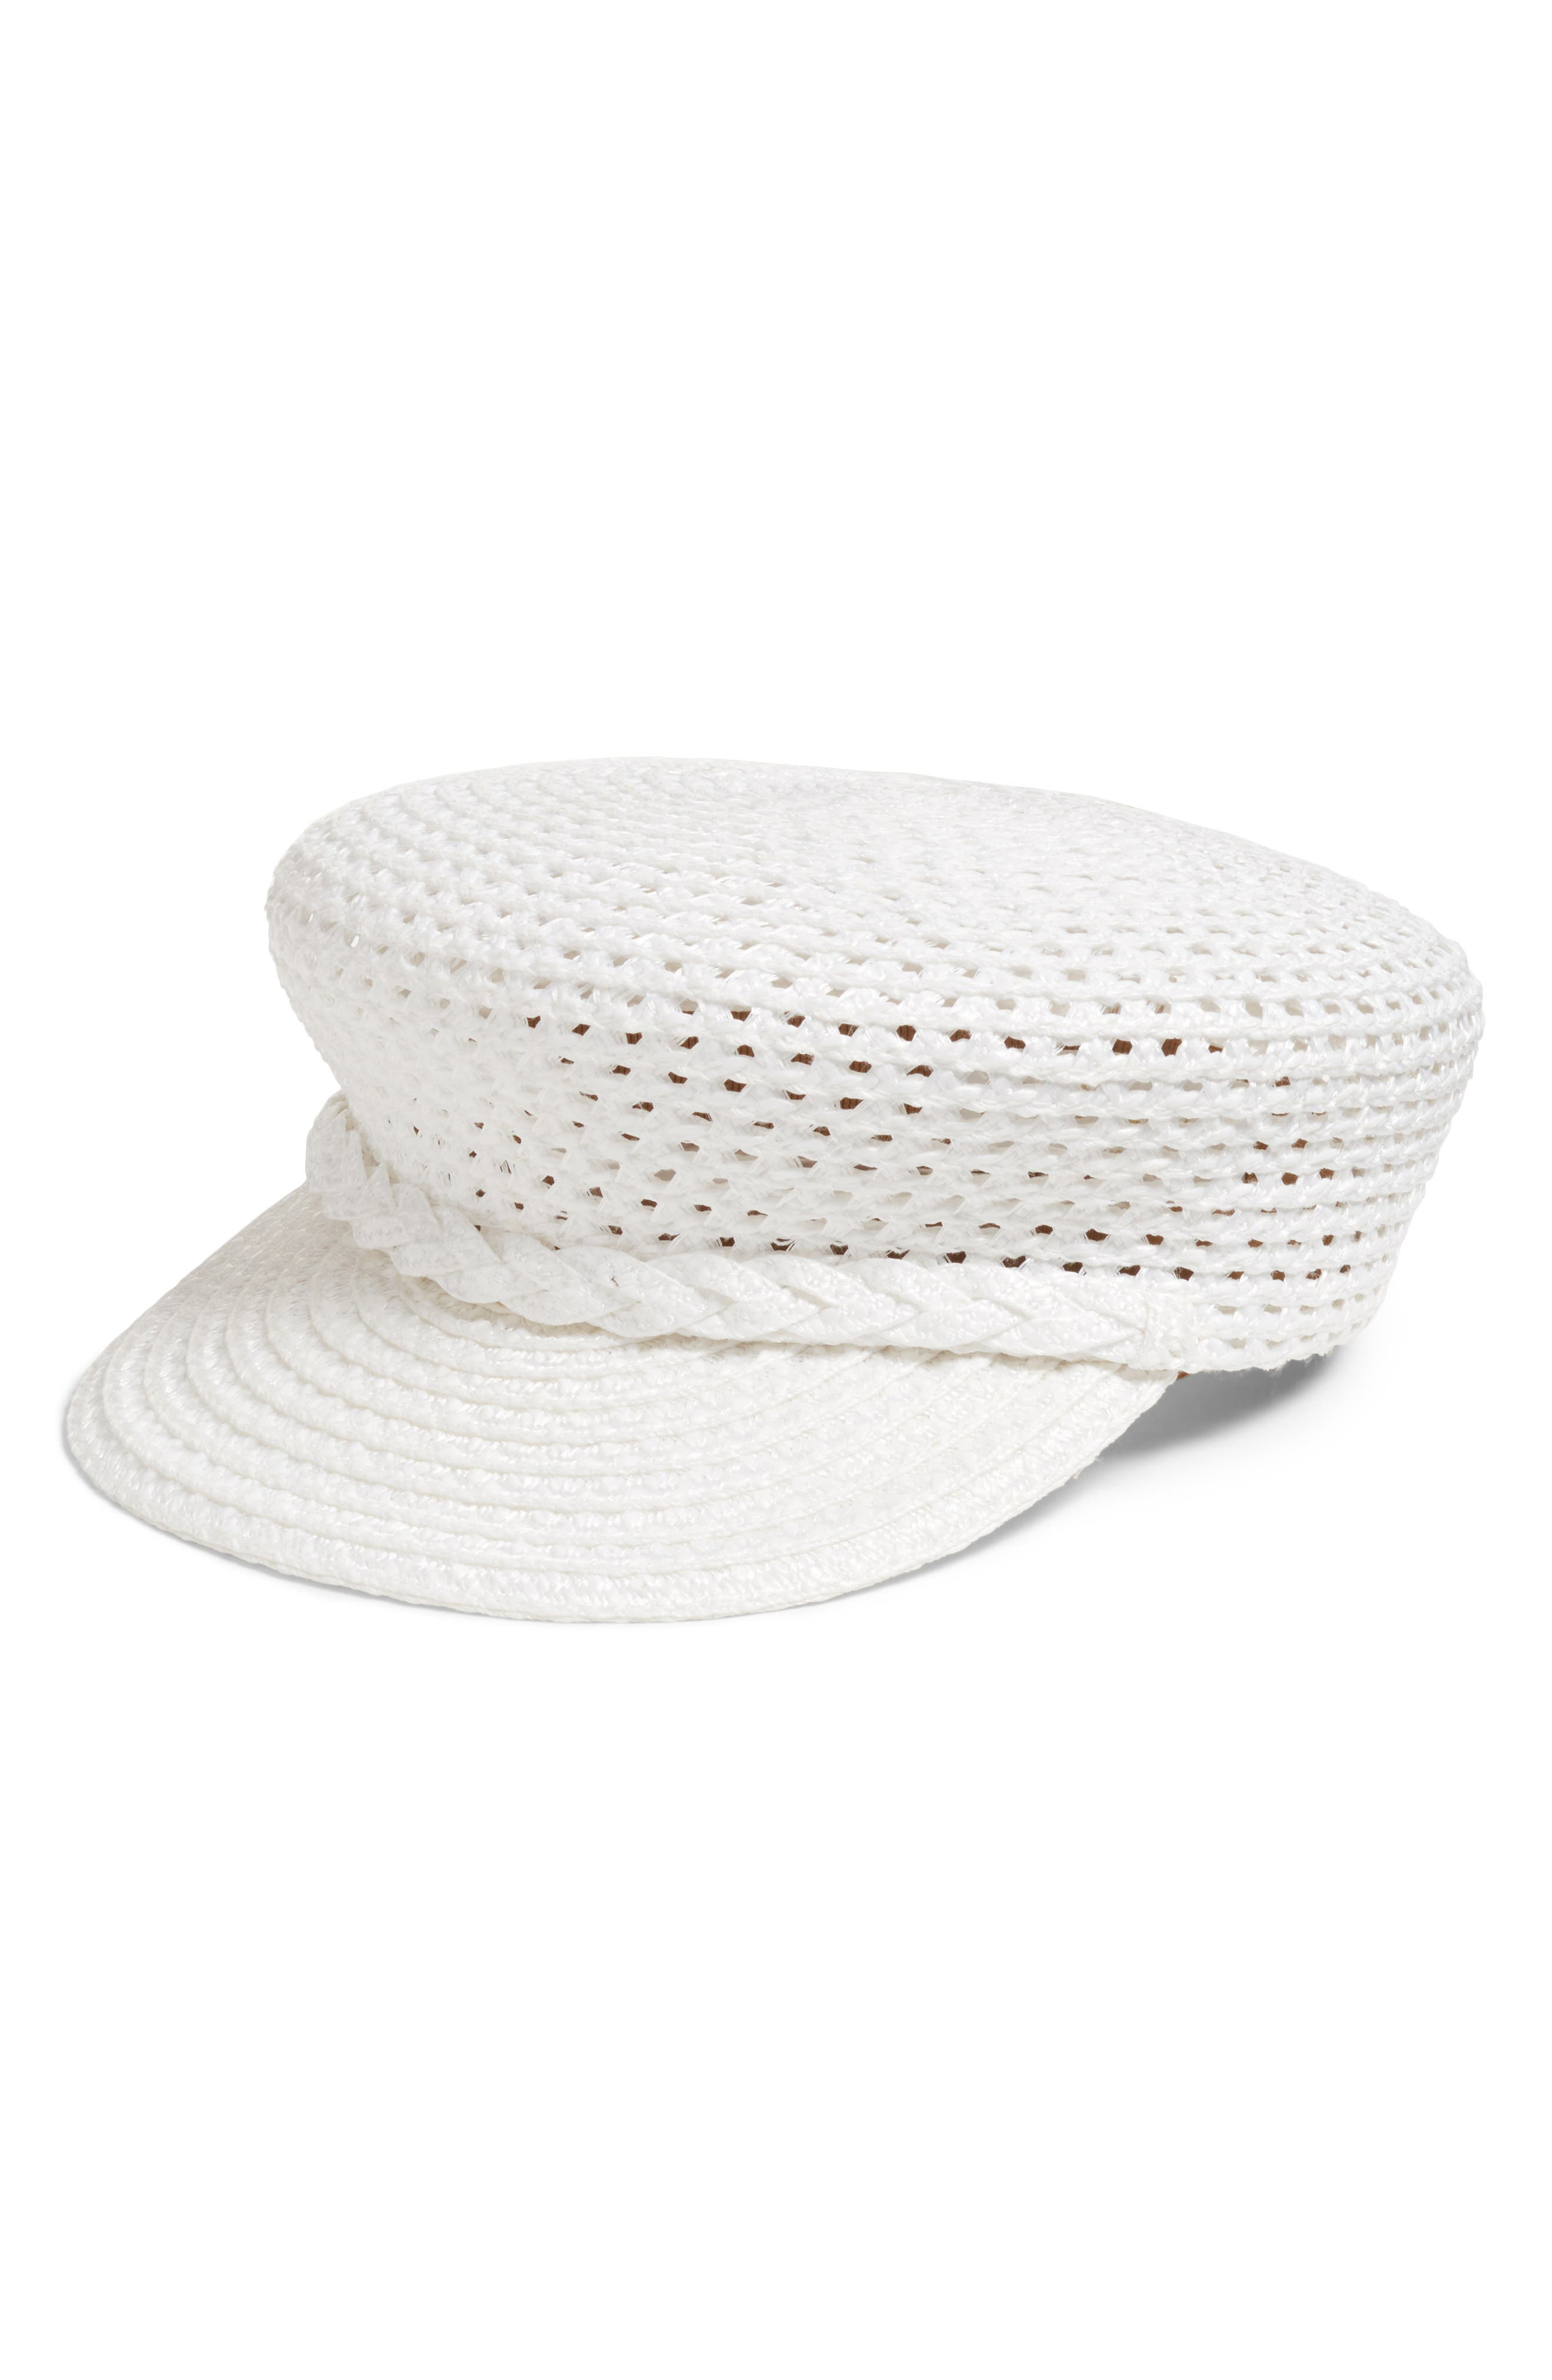 CAPITAN SQUISHEE CAP - WHITE